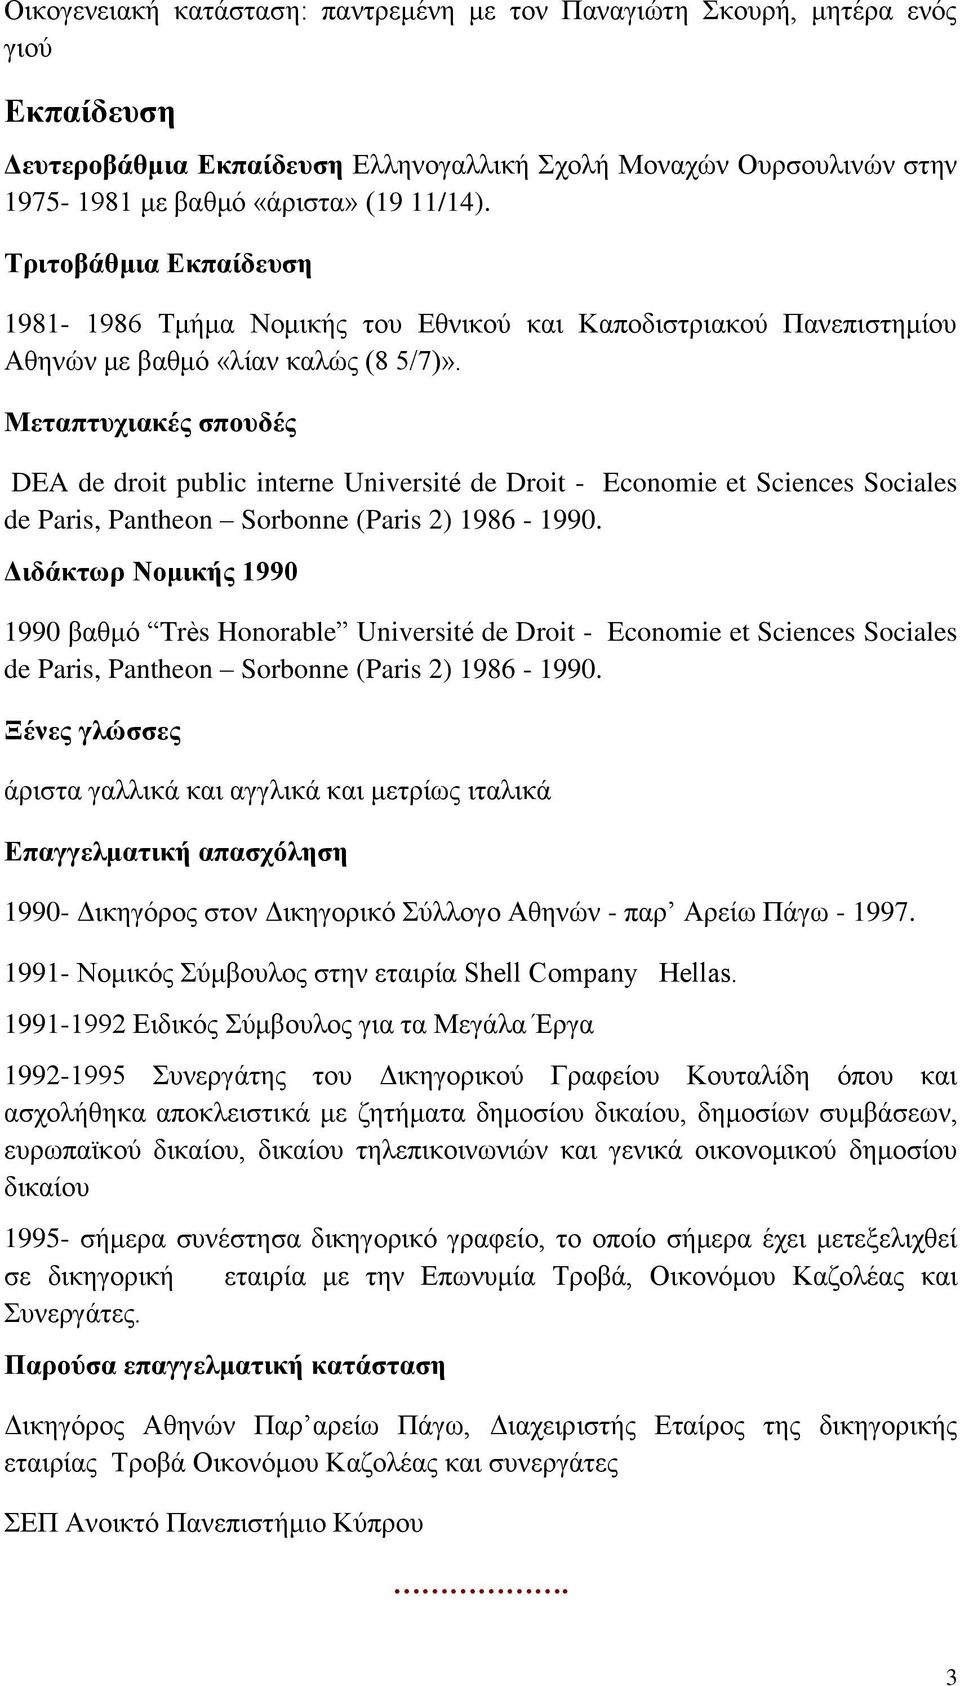 Μεταπτυχιακές σπουδές DEA de droit public interne Université de Droit - Economie et Sciences Sociales de Paris, Pantheon Sorbonne (Paris 2) 1986-1990.